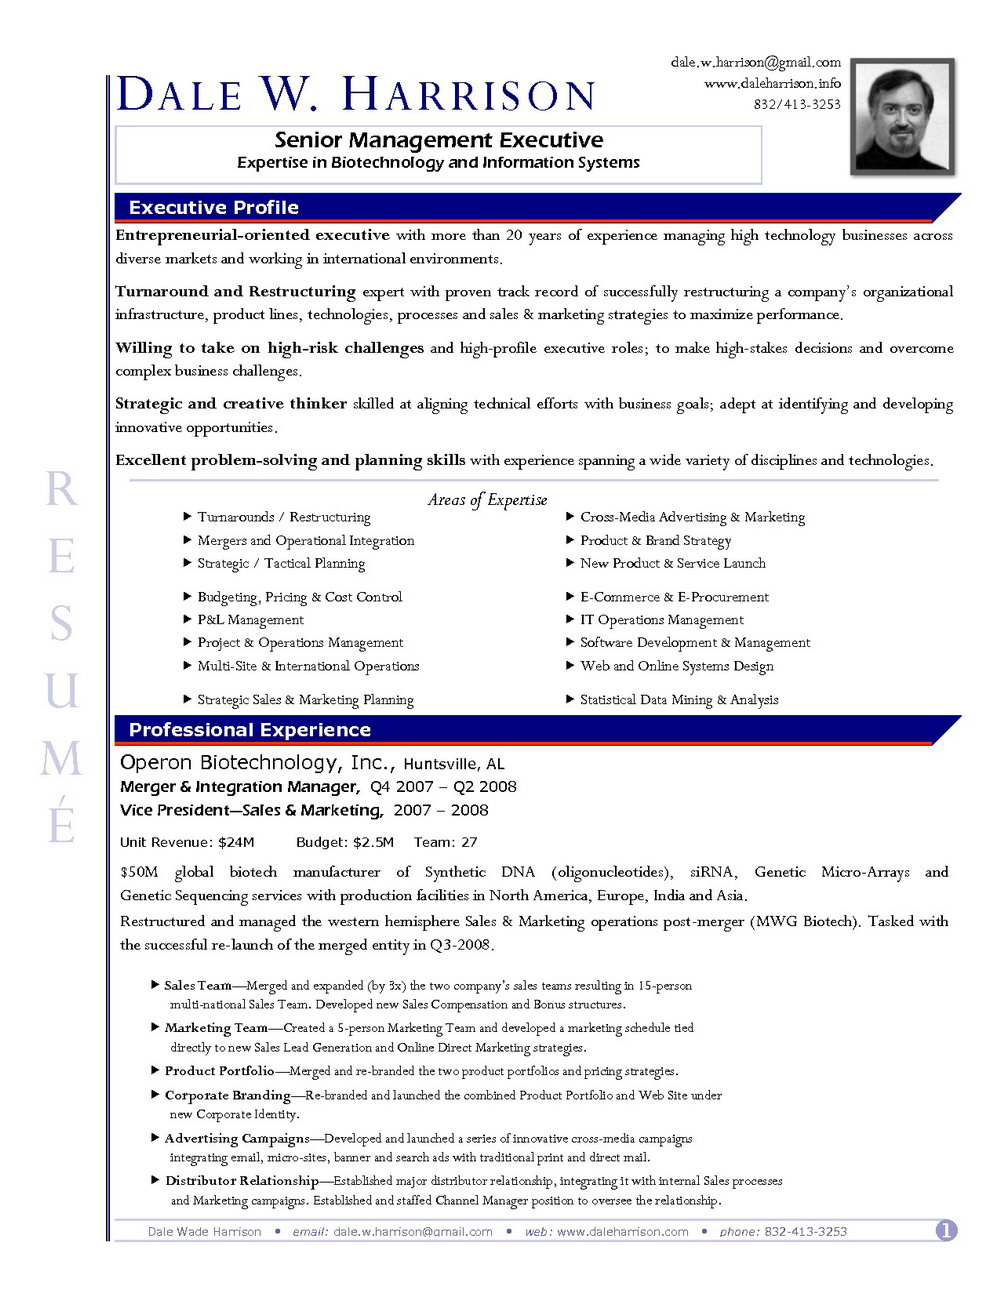 Resume Format Download In Ms Word For Fresher